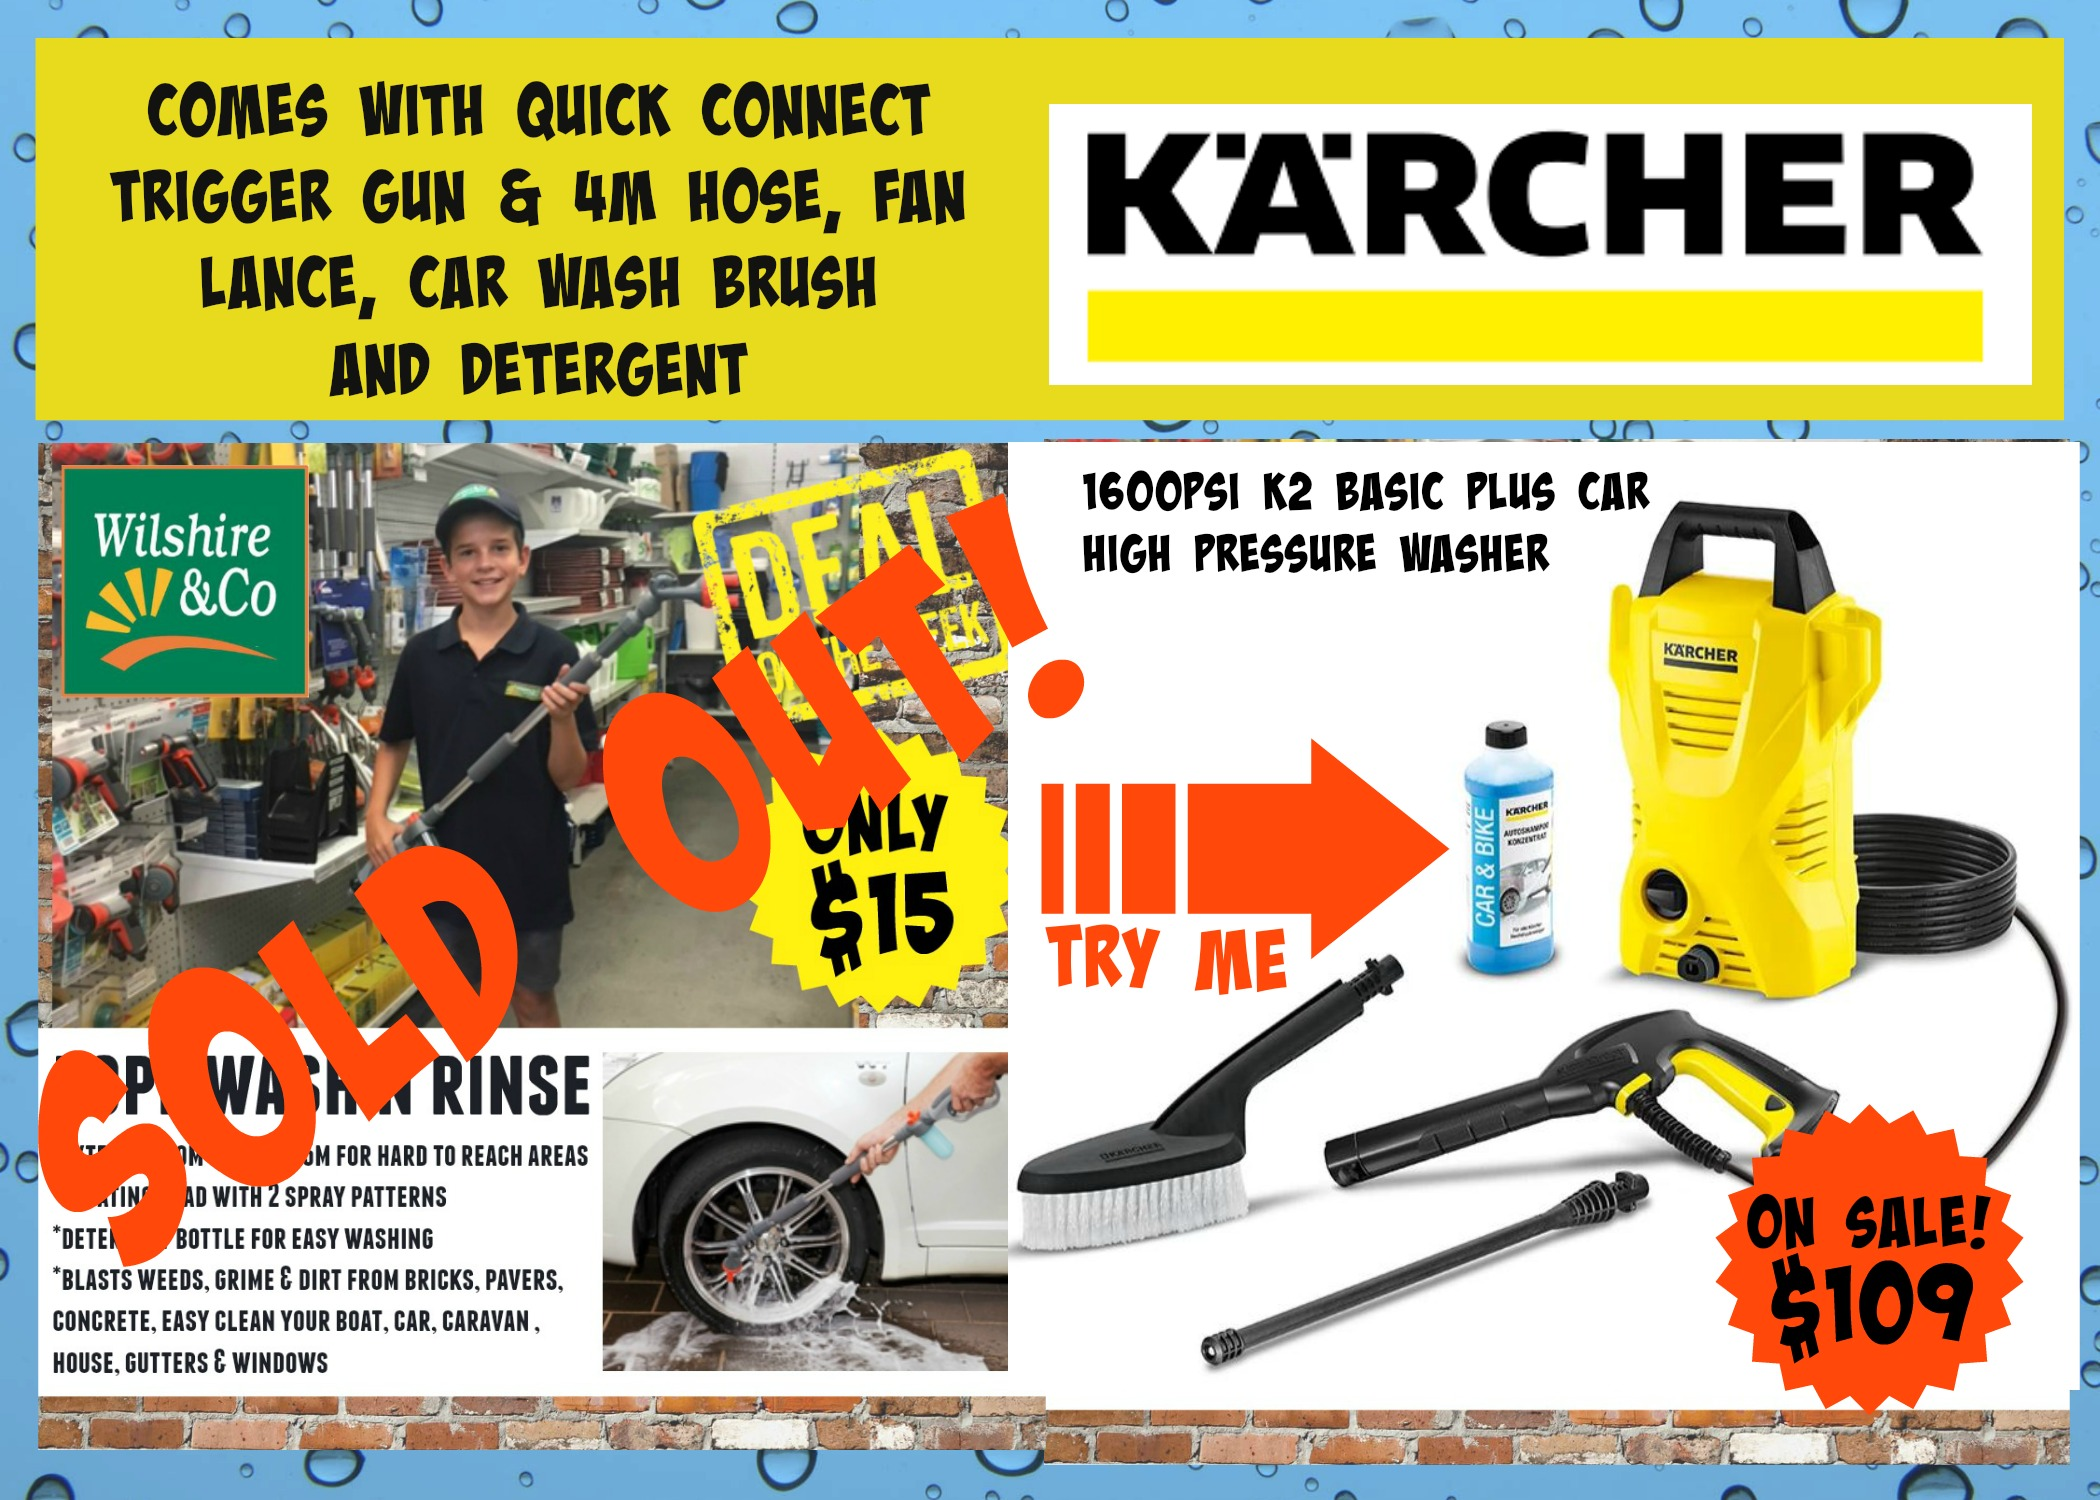 karcher-sold-out.jpg